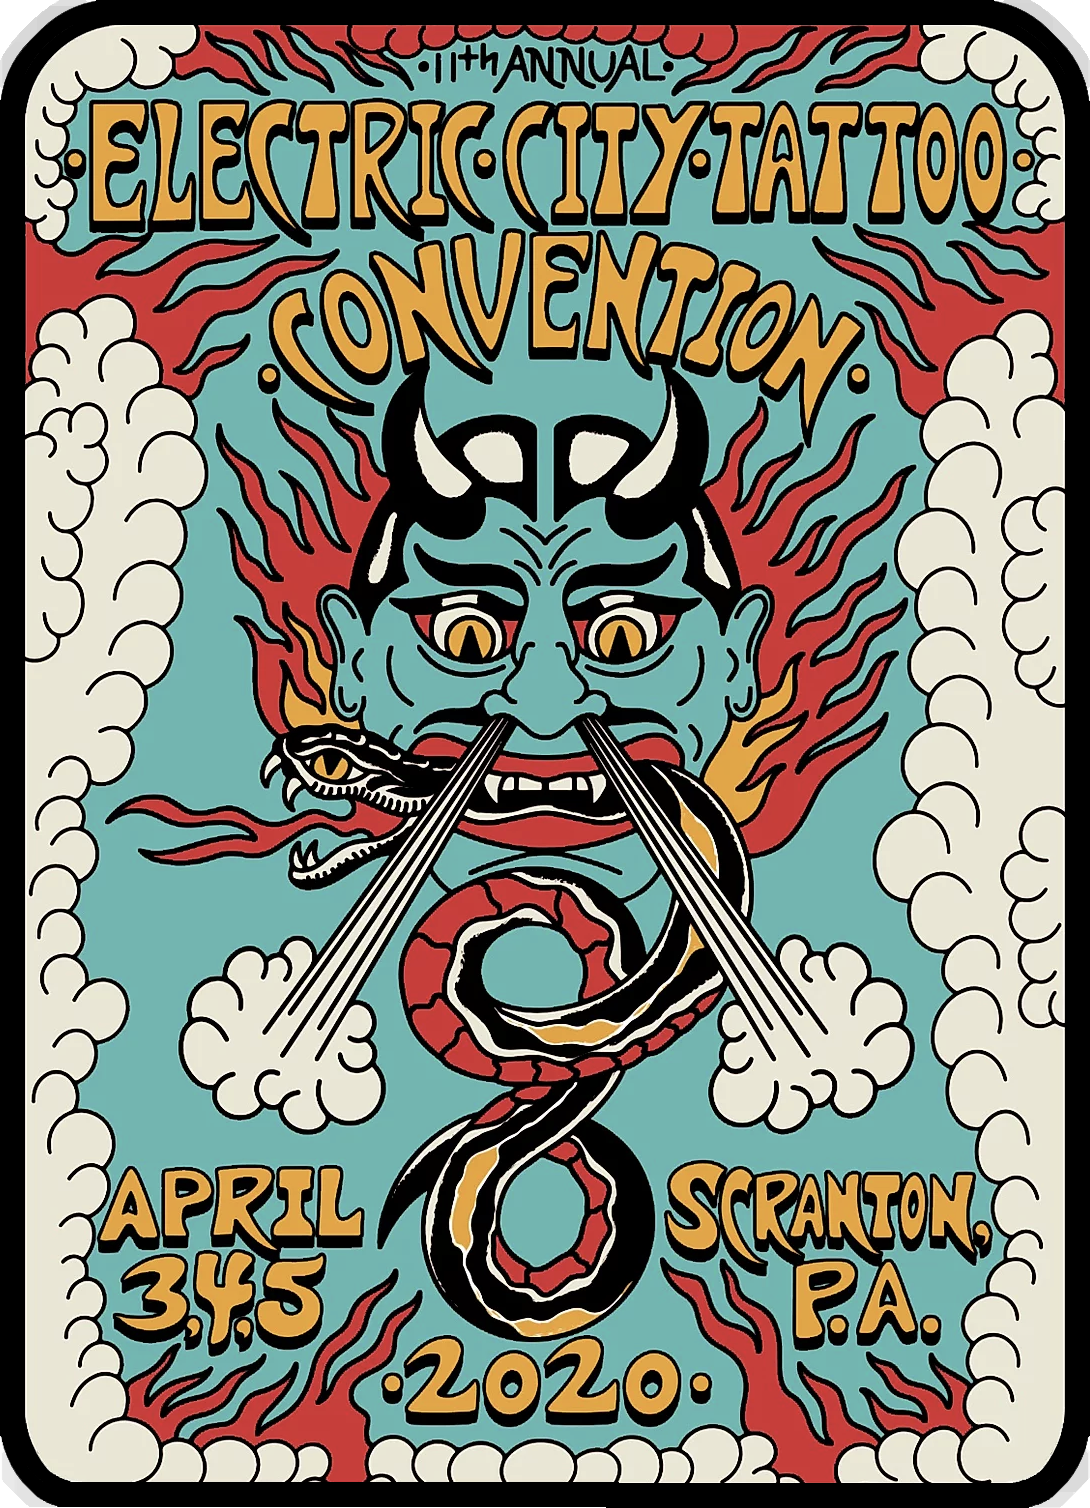 Electric City Tattoo Convention 2020